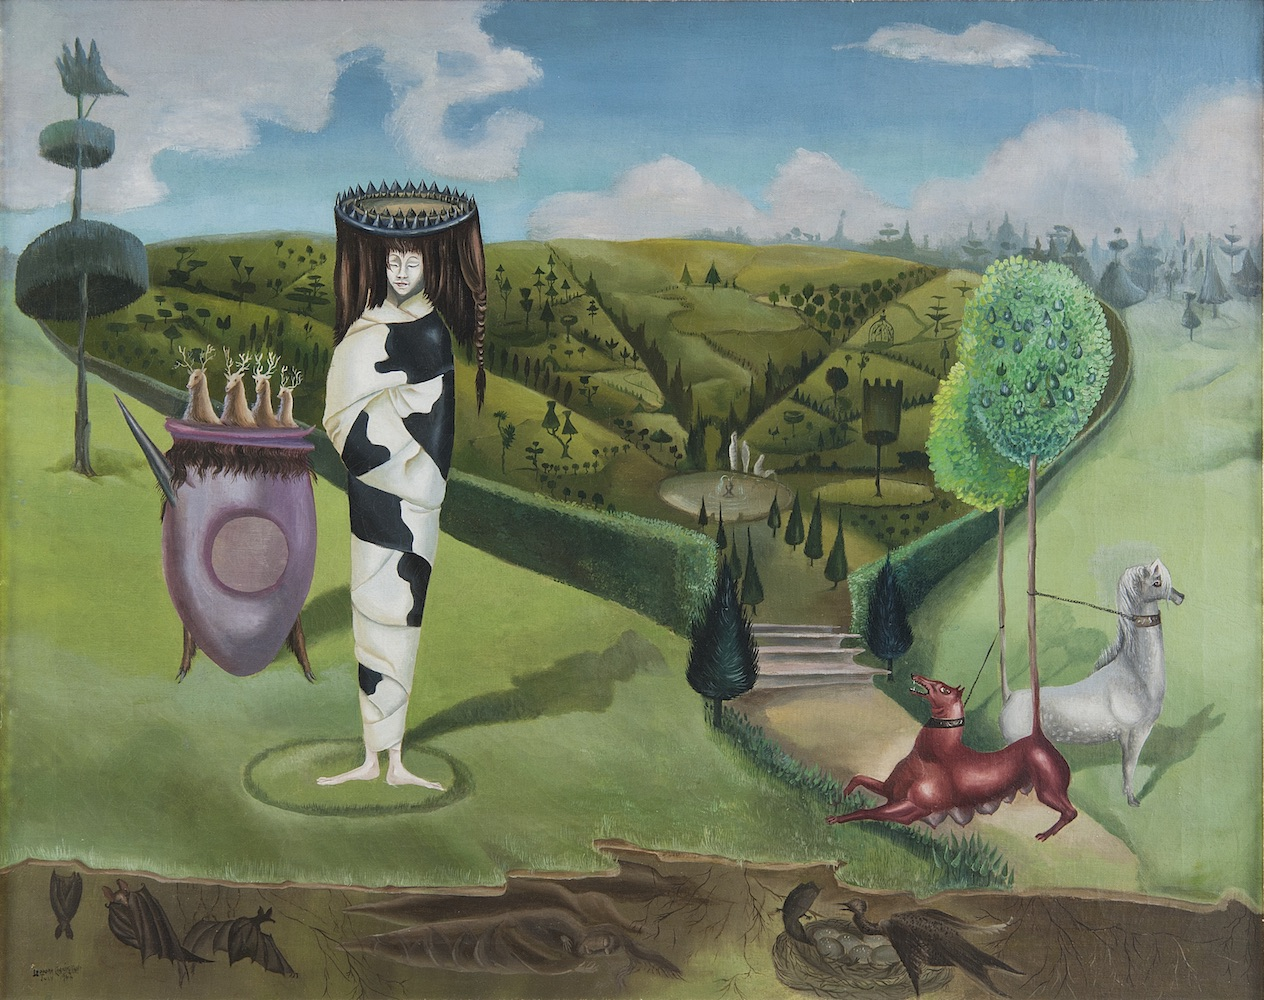 LEONORA CARRINGTON, GREEN TEA, 1942, OIL ON CANVAS, 24″ X 30″. © 2019 ESTATE OF LEONORA CARRINGTON / ARTISTS RIGHTS SOCIETY (ARS), NEW YORK. COURTESY OF GALLERY WENDI NORRIS.